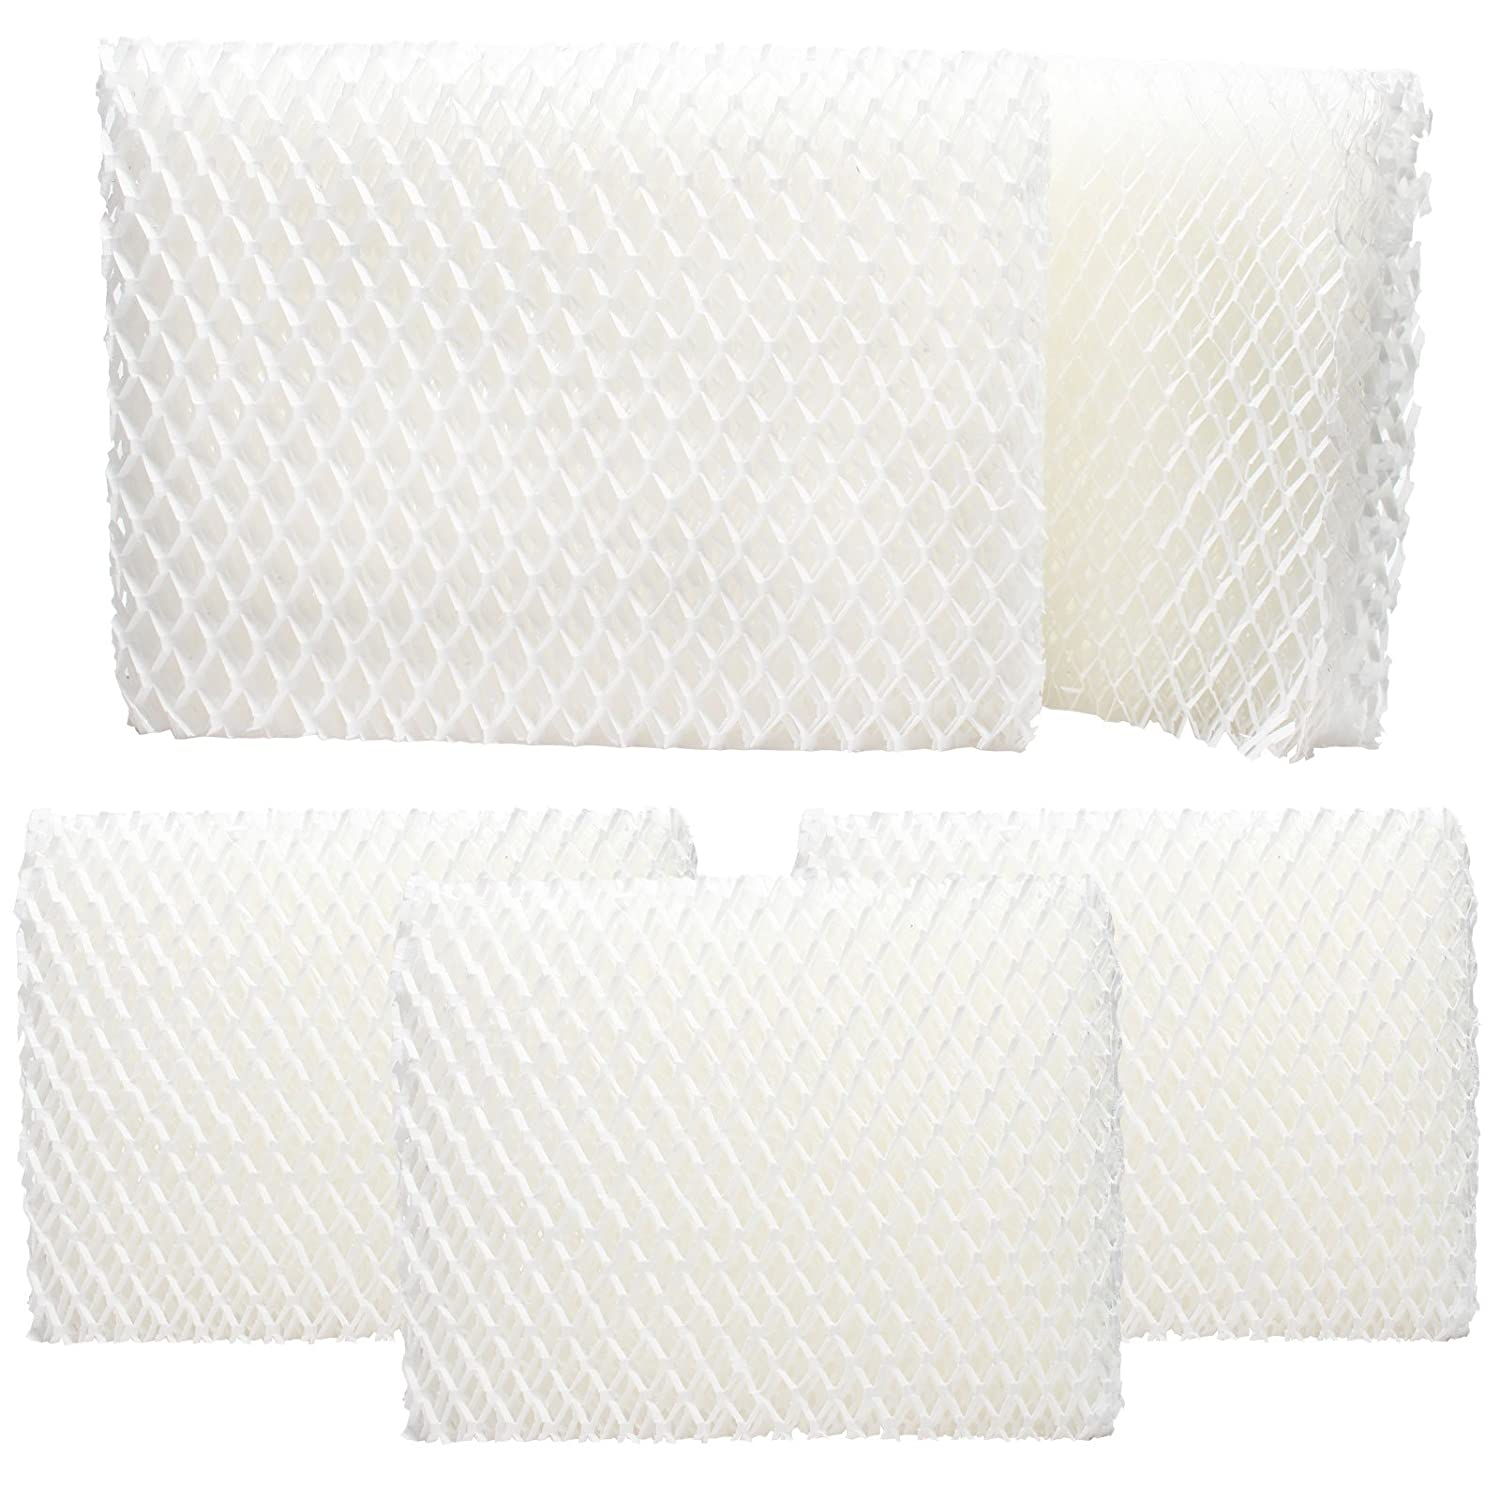 5-Pack Replacement HDC-12 filter for Essick Air, MoistAir, Kenmore, Emerson, Sears - Compatible with Essick Air EA1407, MoistAir HD14070, Kenmore 14911, MoistAir HD1407, Emerson HD1406, Emerson HD1407, Essick Air HD1407, Essick Air 1407, Sears 14911